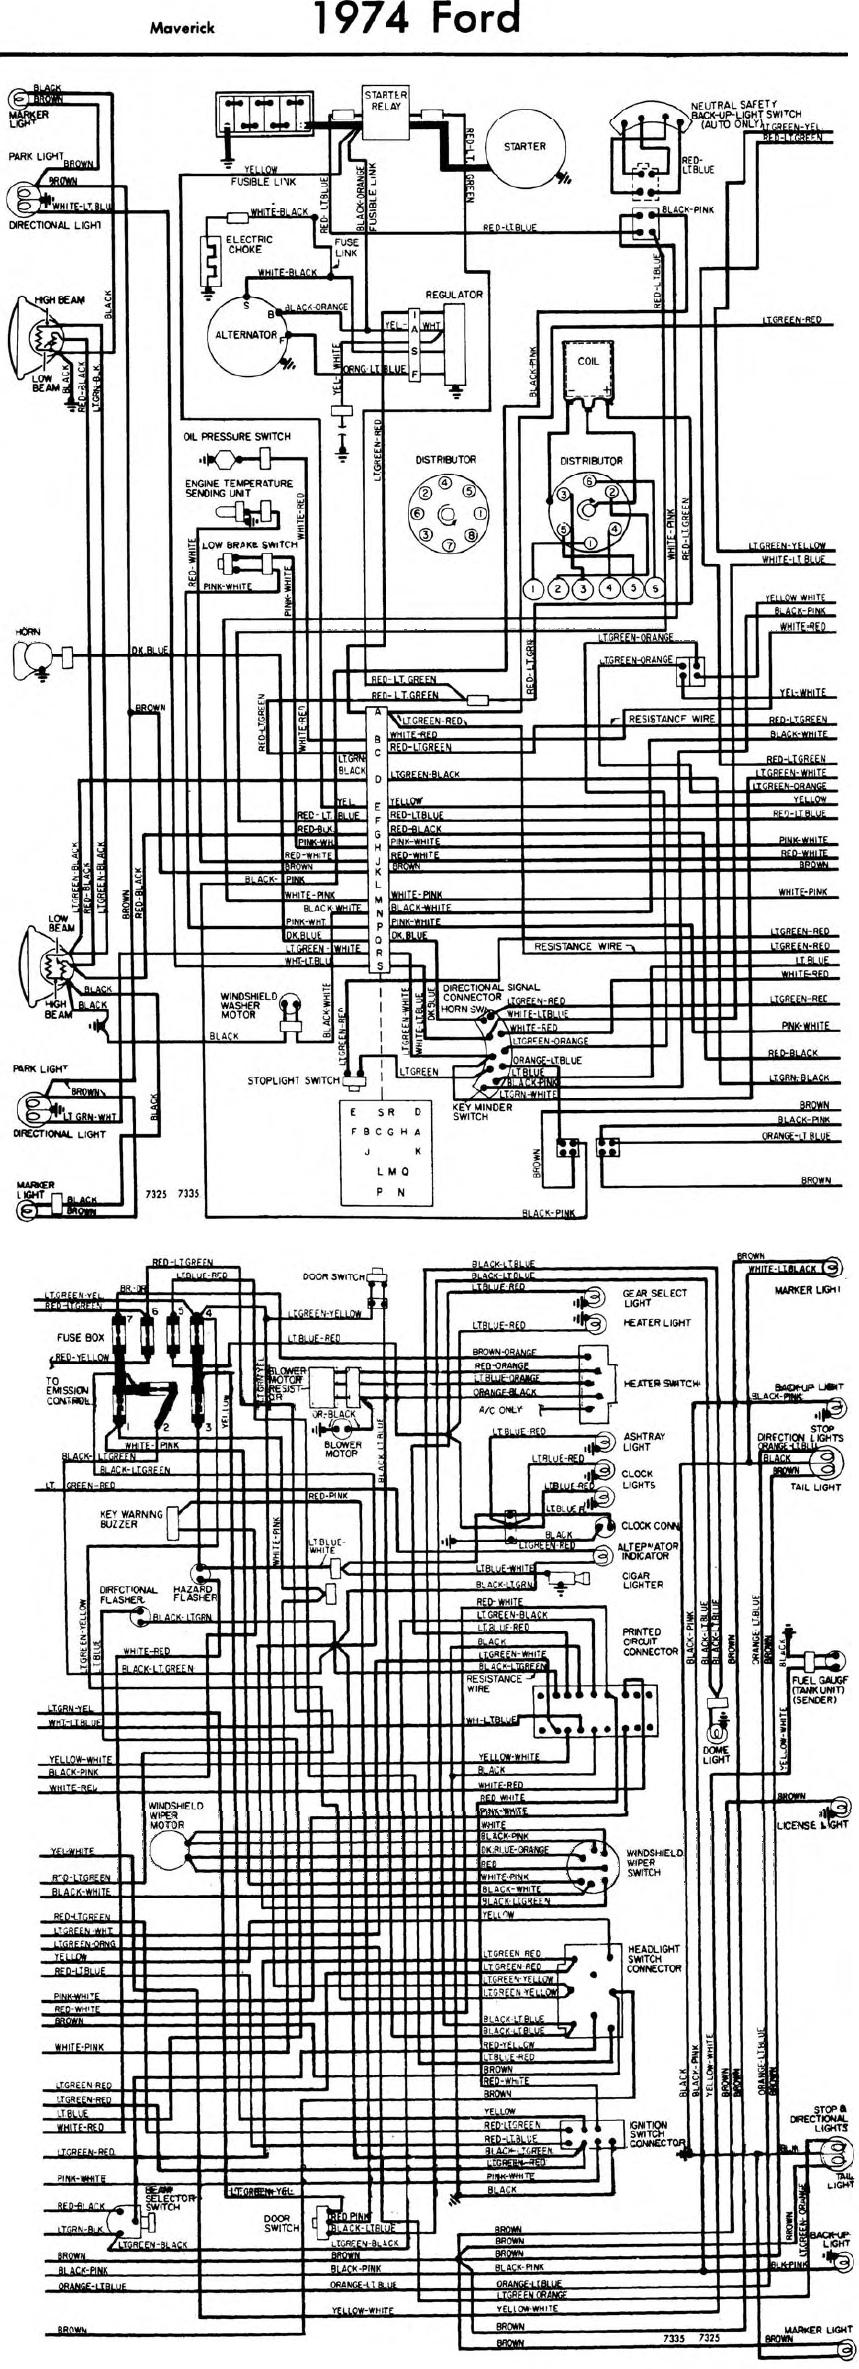 Ford Maverick Starter Wiring Completed Diagrams 1970 Diagram Schematic Data Solenoid